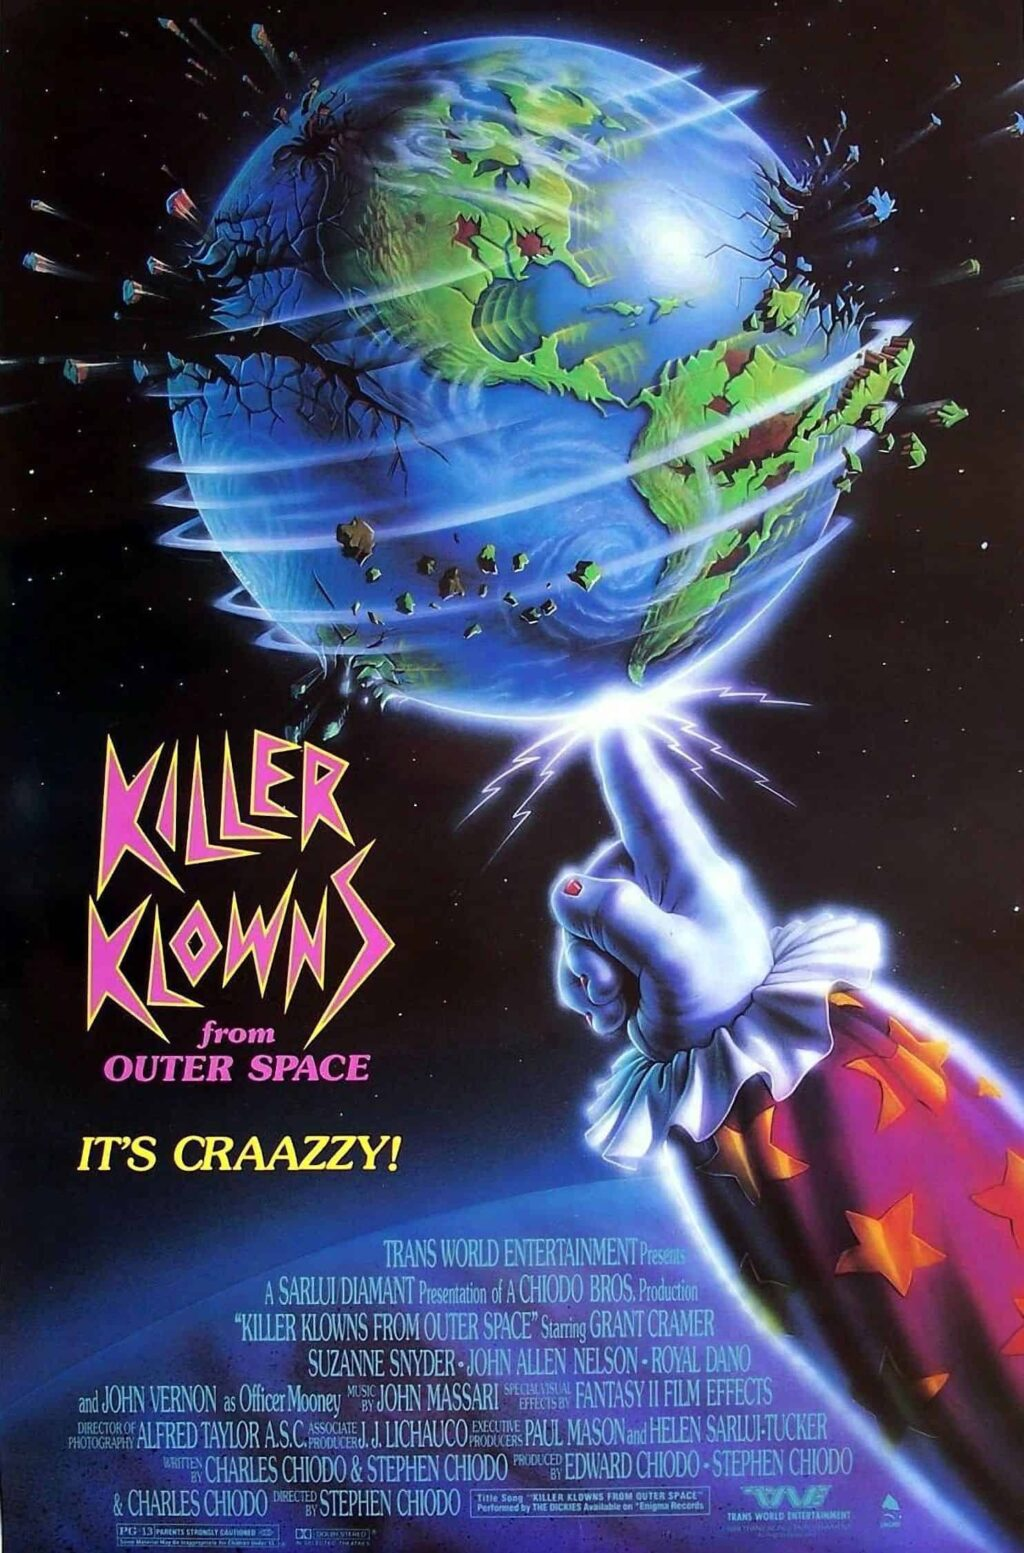 killer klowns from outer space poster 1024x1553 - Re-Scheduled: KILLER KLOWNS FROM OUTER SPACE Watch-Party with The Chiodo Brothers TODAY, August 1st at 4 PM (PST)